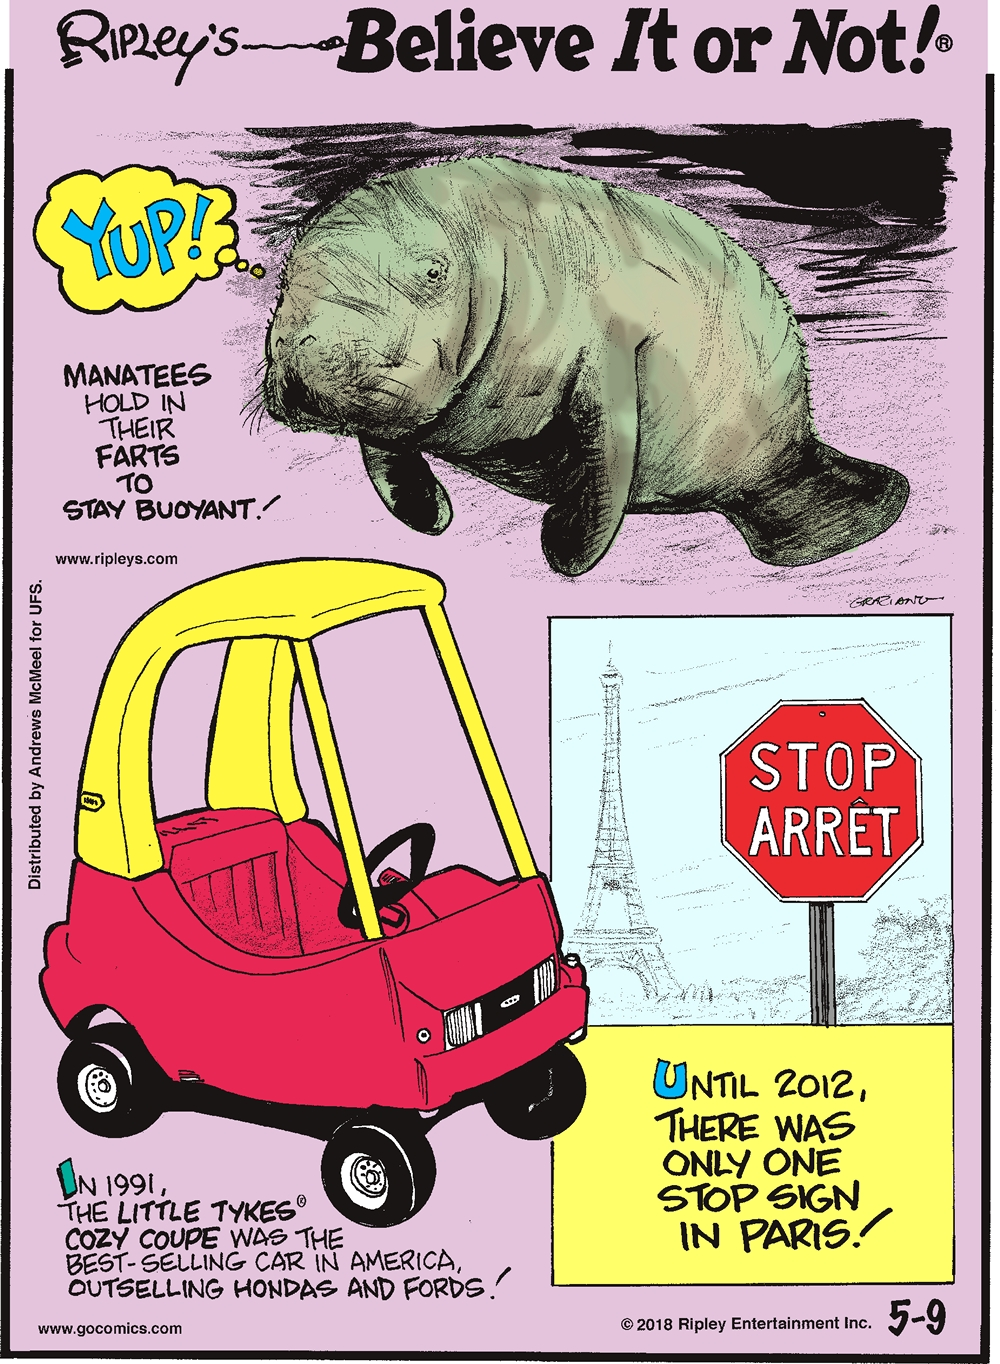 Manatees hold in their farts to stay buoyant!-------------------- In 1991, the Little Tykes Cozy Coupe was the best-selling car in America, outselling Hondas and Fords!-------------------- Until 2012, there was only one stop sign in Paris!